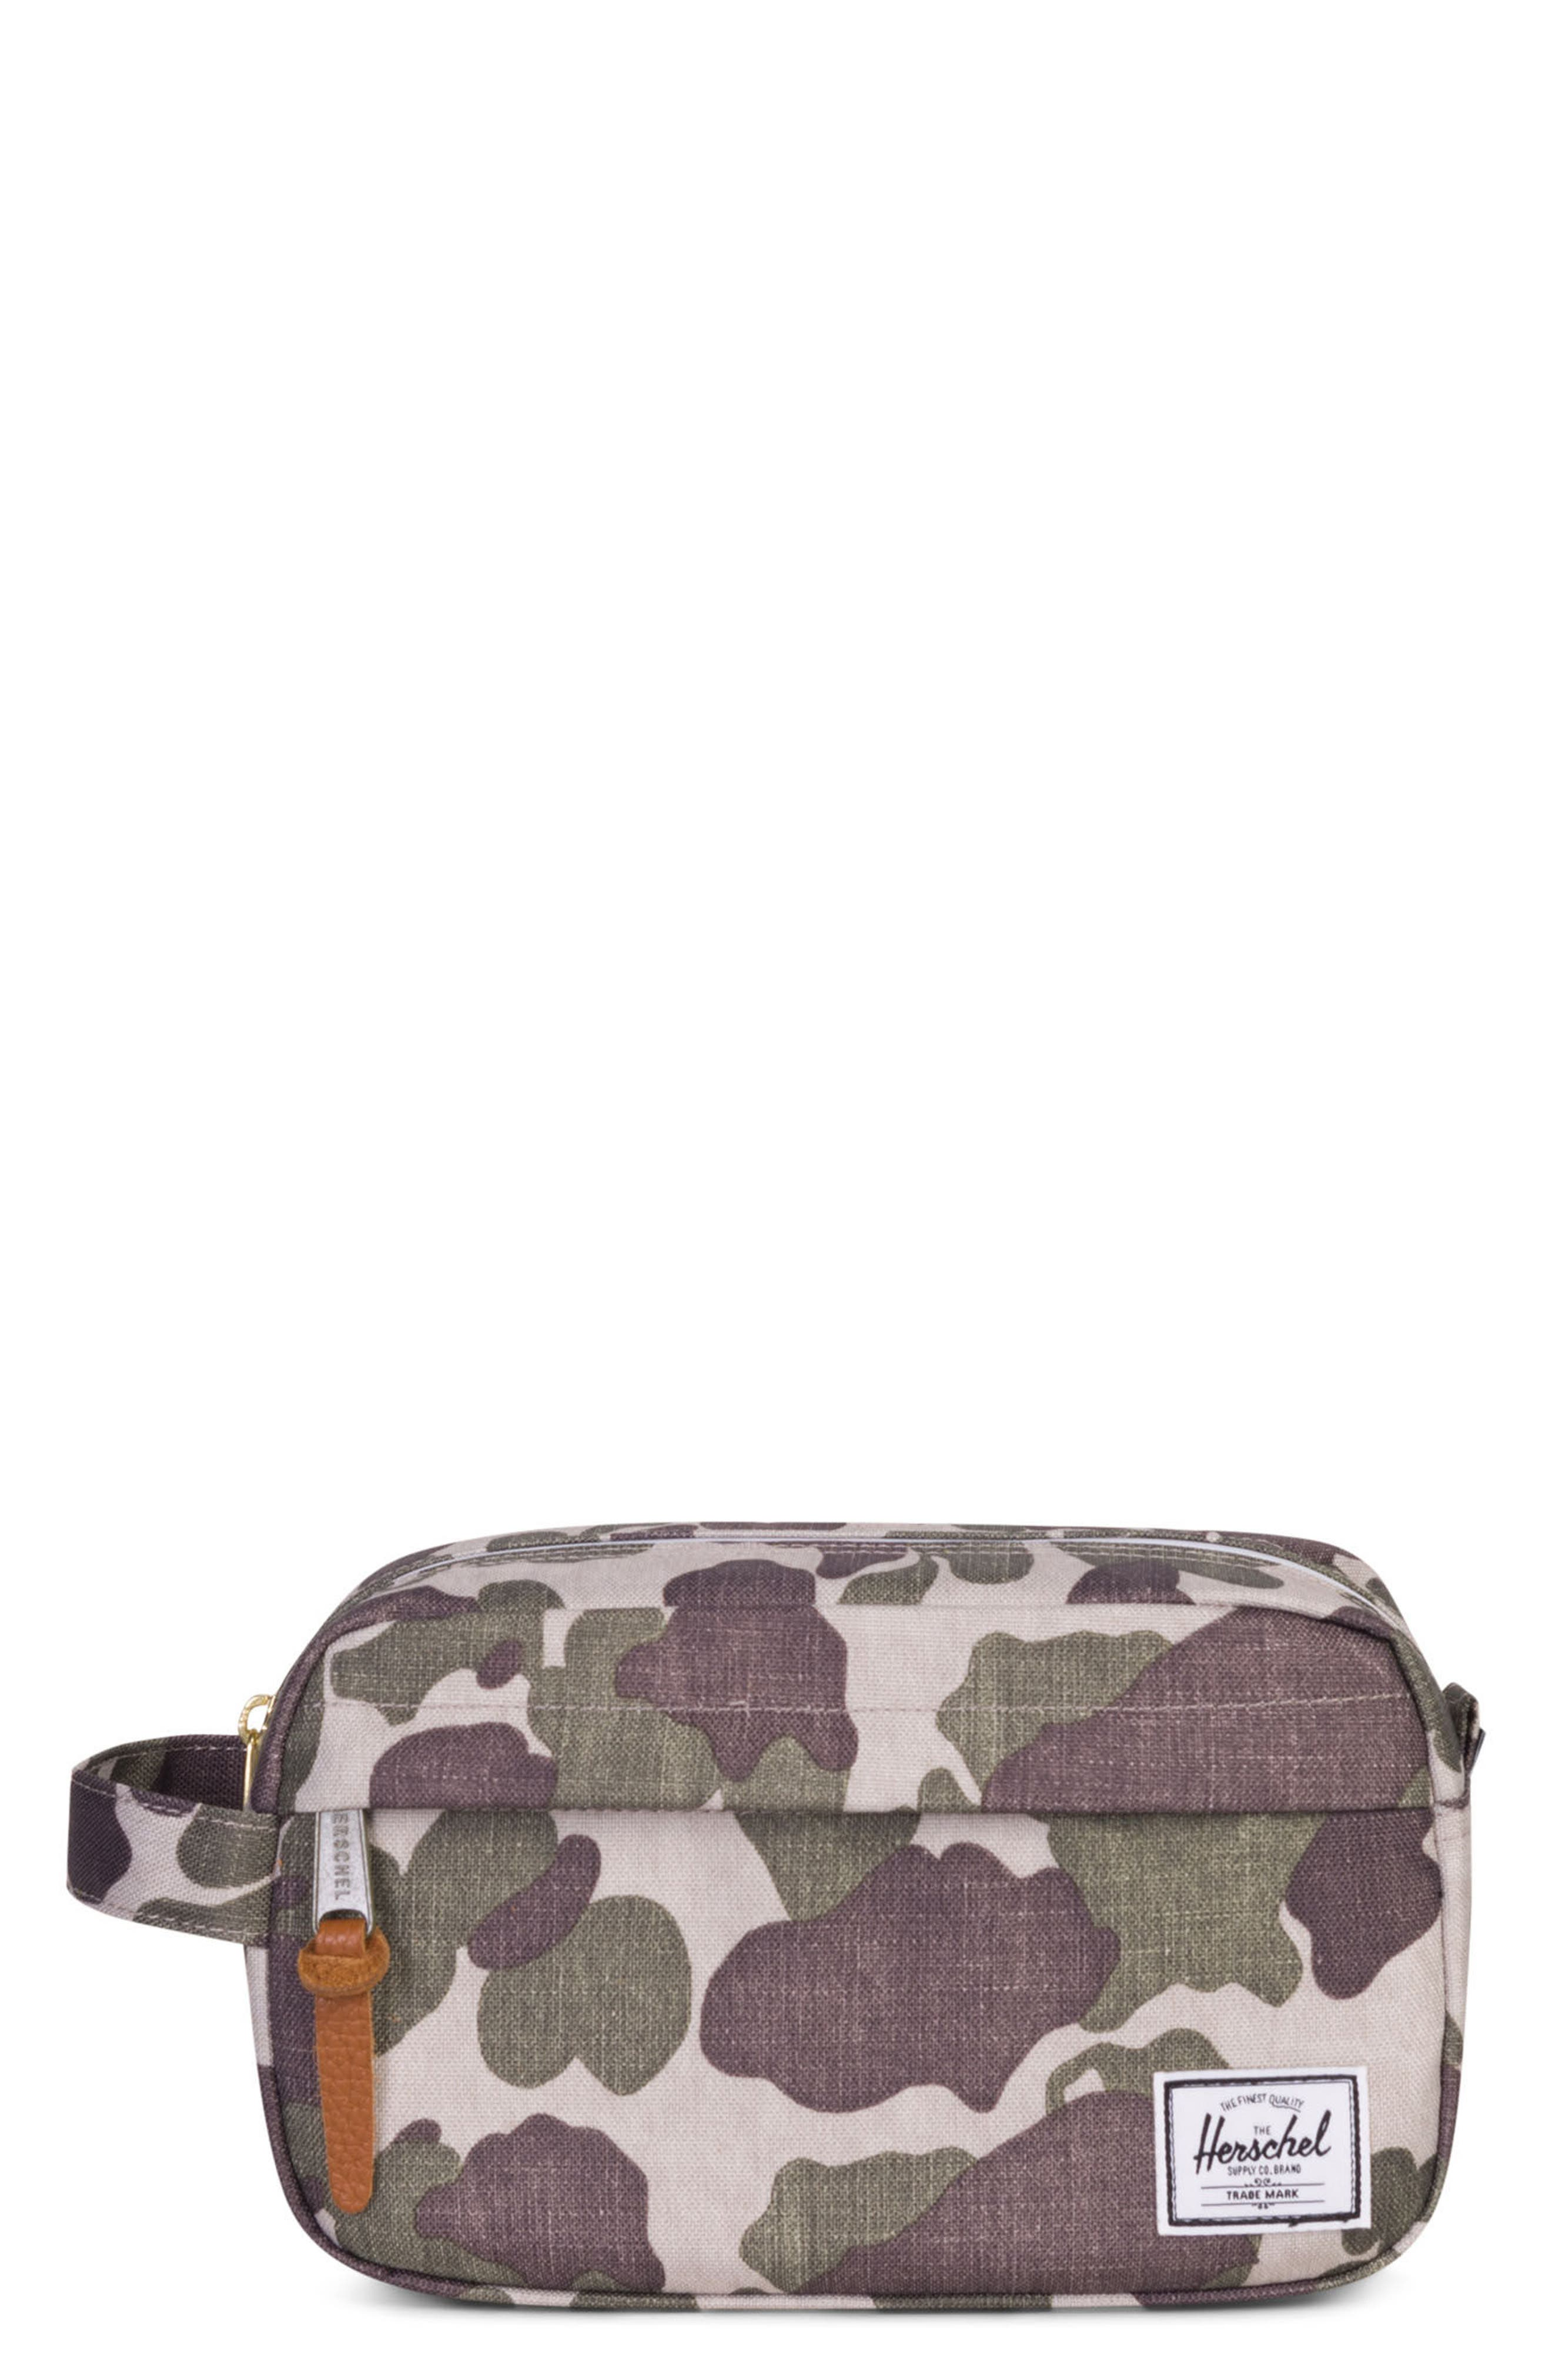 Carry-On Travel Kit,                         Main,                         color, Frog Camo